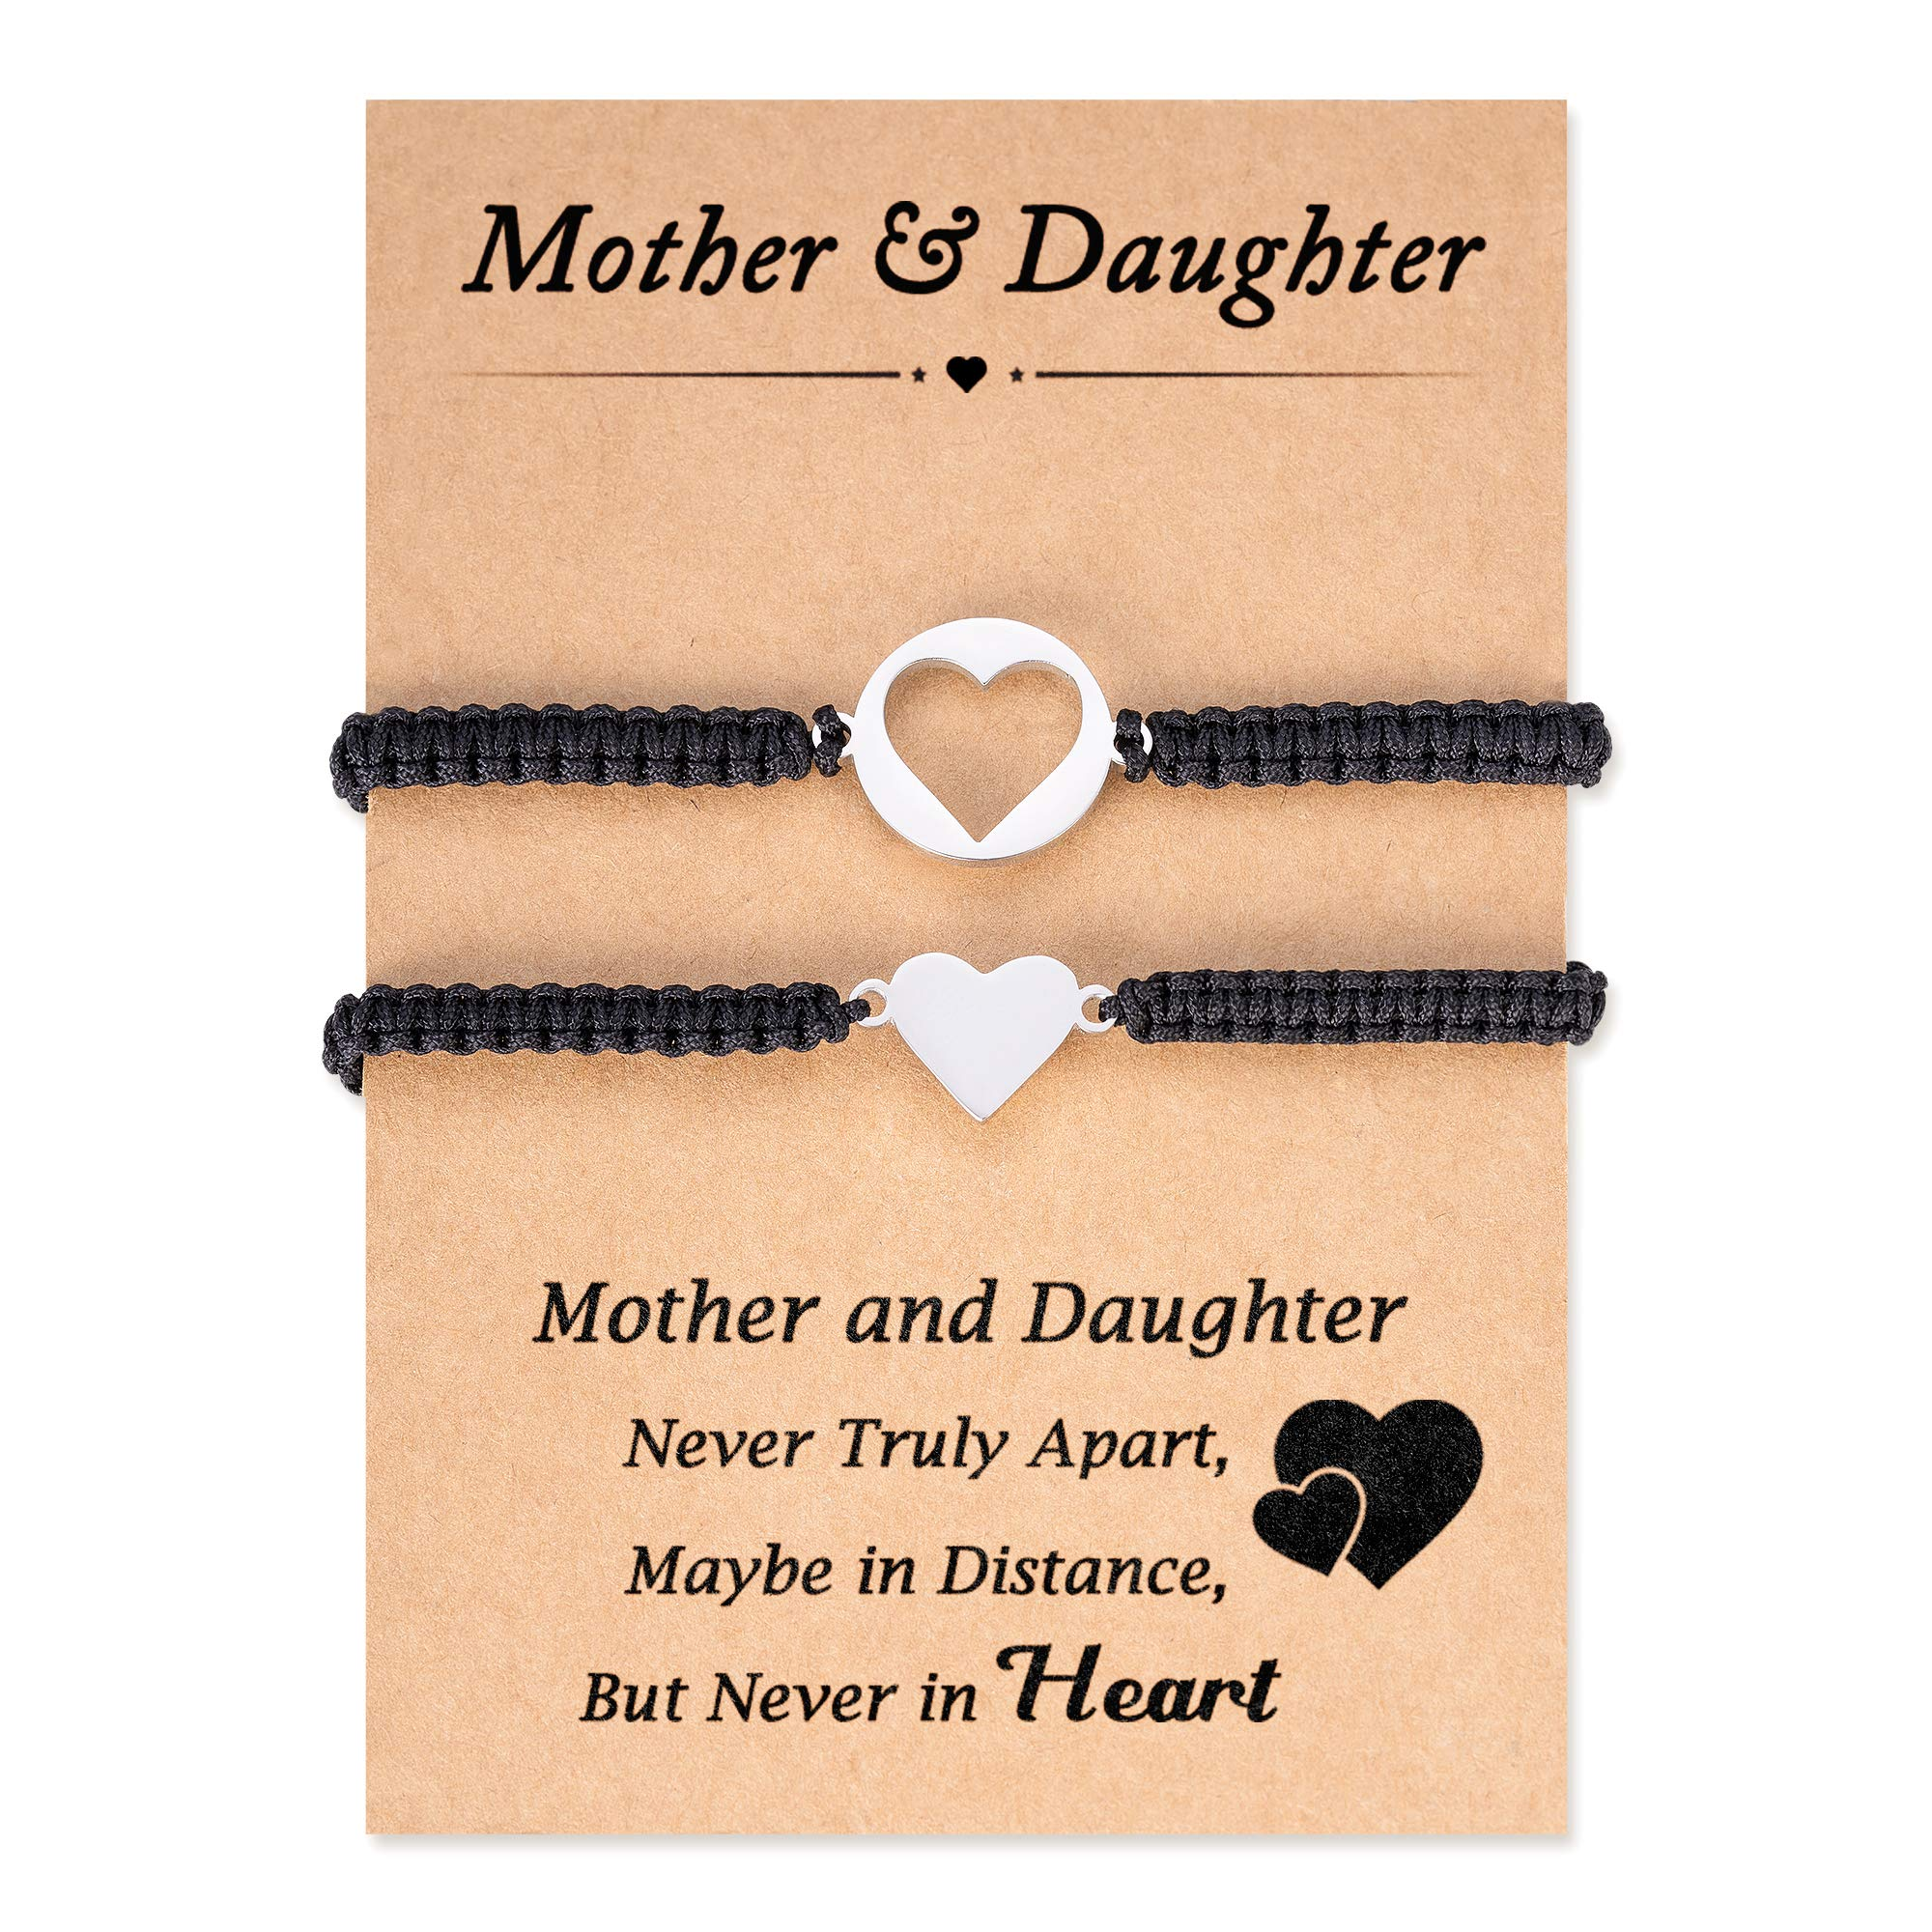 Seyaa Mother Daughter Bracelets Mom Mommy and Me Jewelry Heart Matching for Women Girls